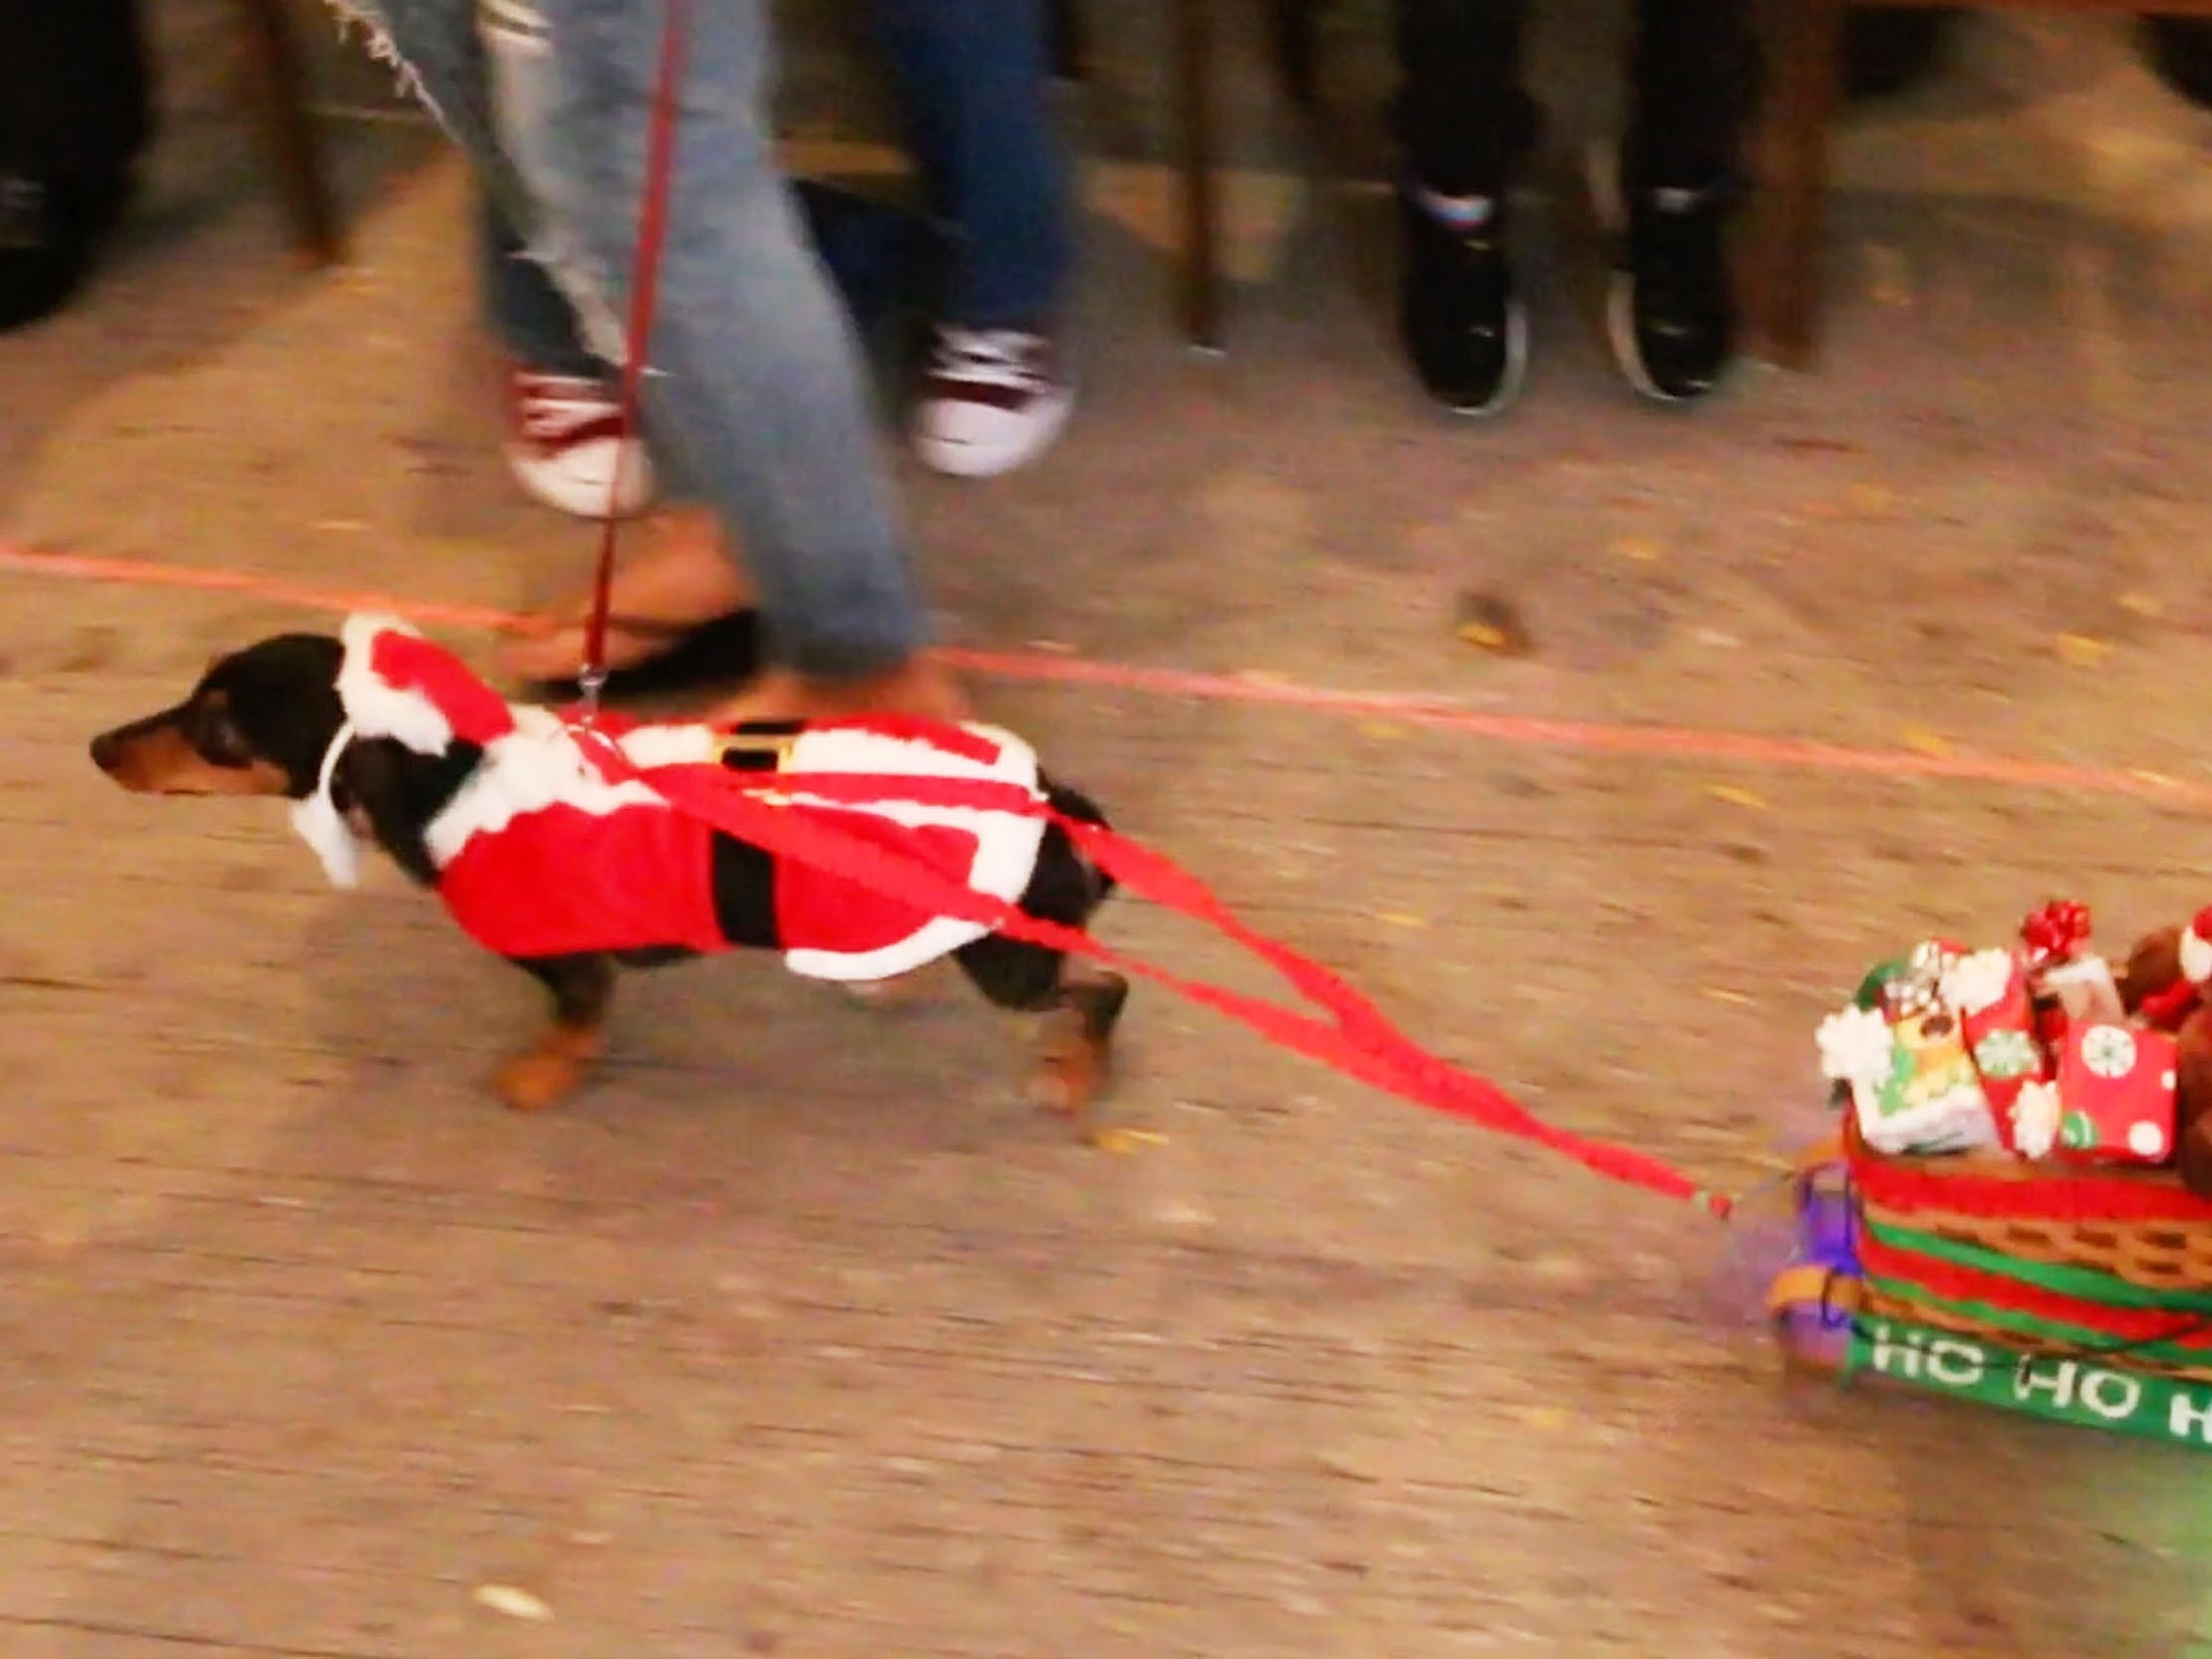 Olivia, the dachshund, runs towing a holiday sled during Al and Al's Oktoberfest weiner dog costume show,Saturday October 6, 2018, in Sheboygan, Wis.